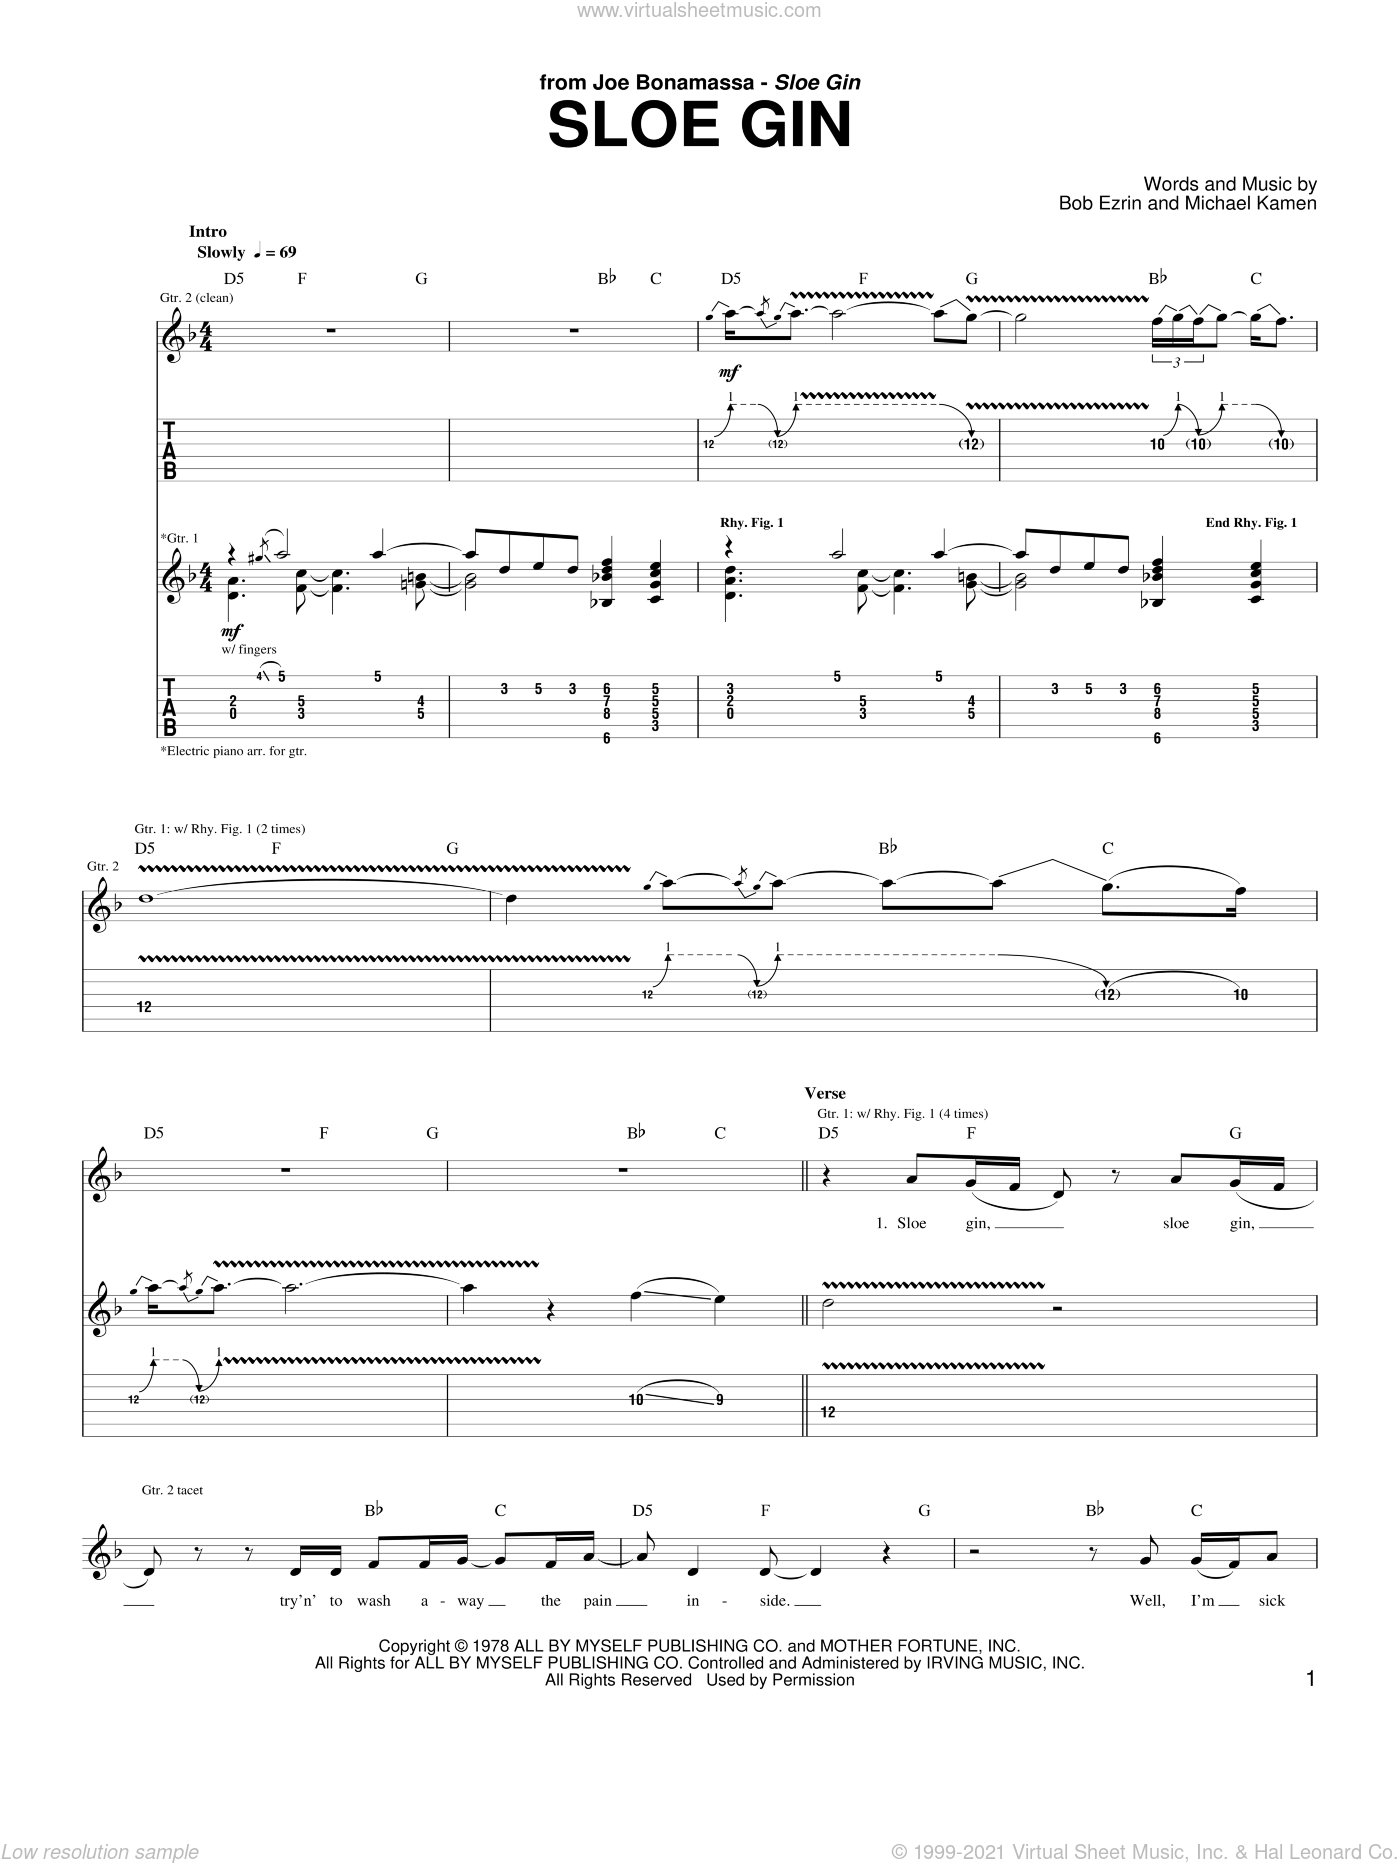 Sloe Gin sheet music for guitar (tablature) by Joe Bonamassa, Bob Ezrin and Michael Kamen, intermediate guitar (tablature). Score Image Preview.